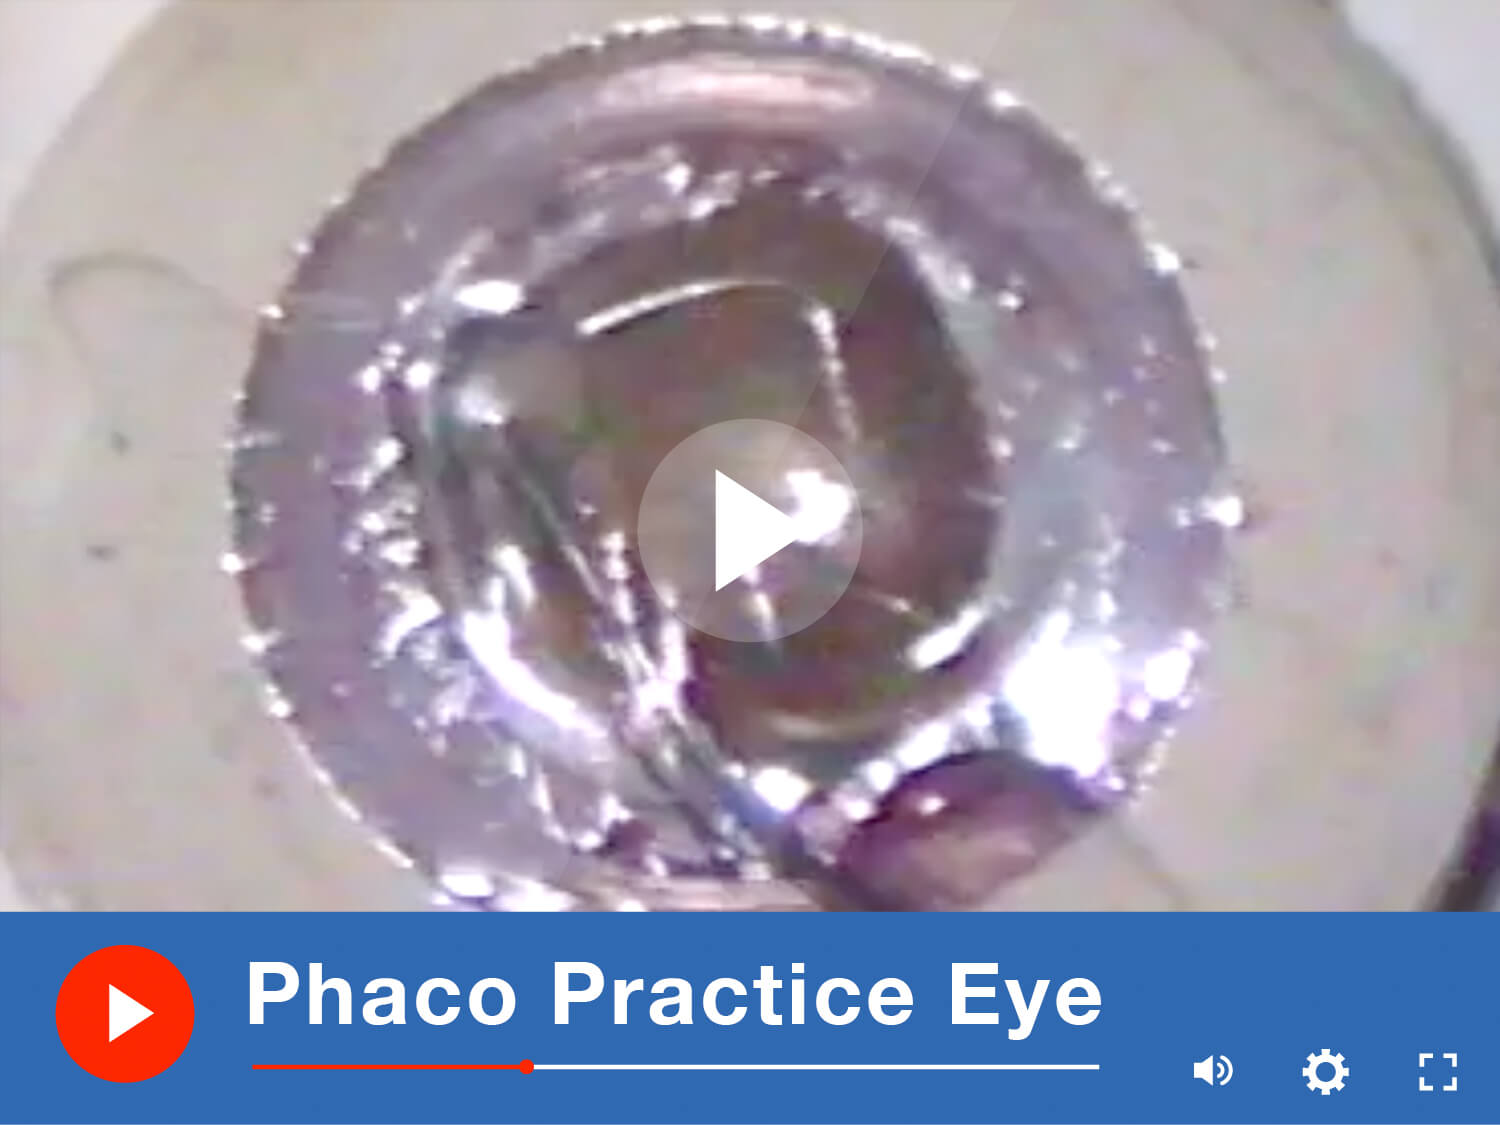 Phaco Practice Eye Video